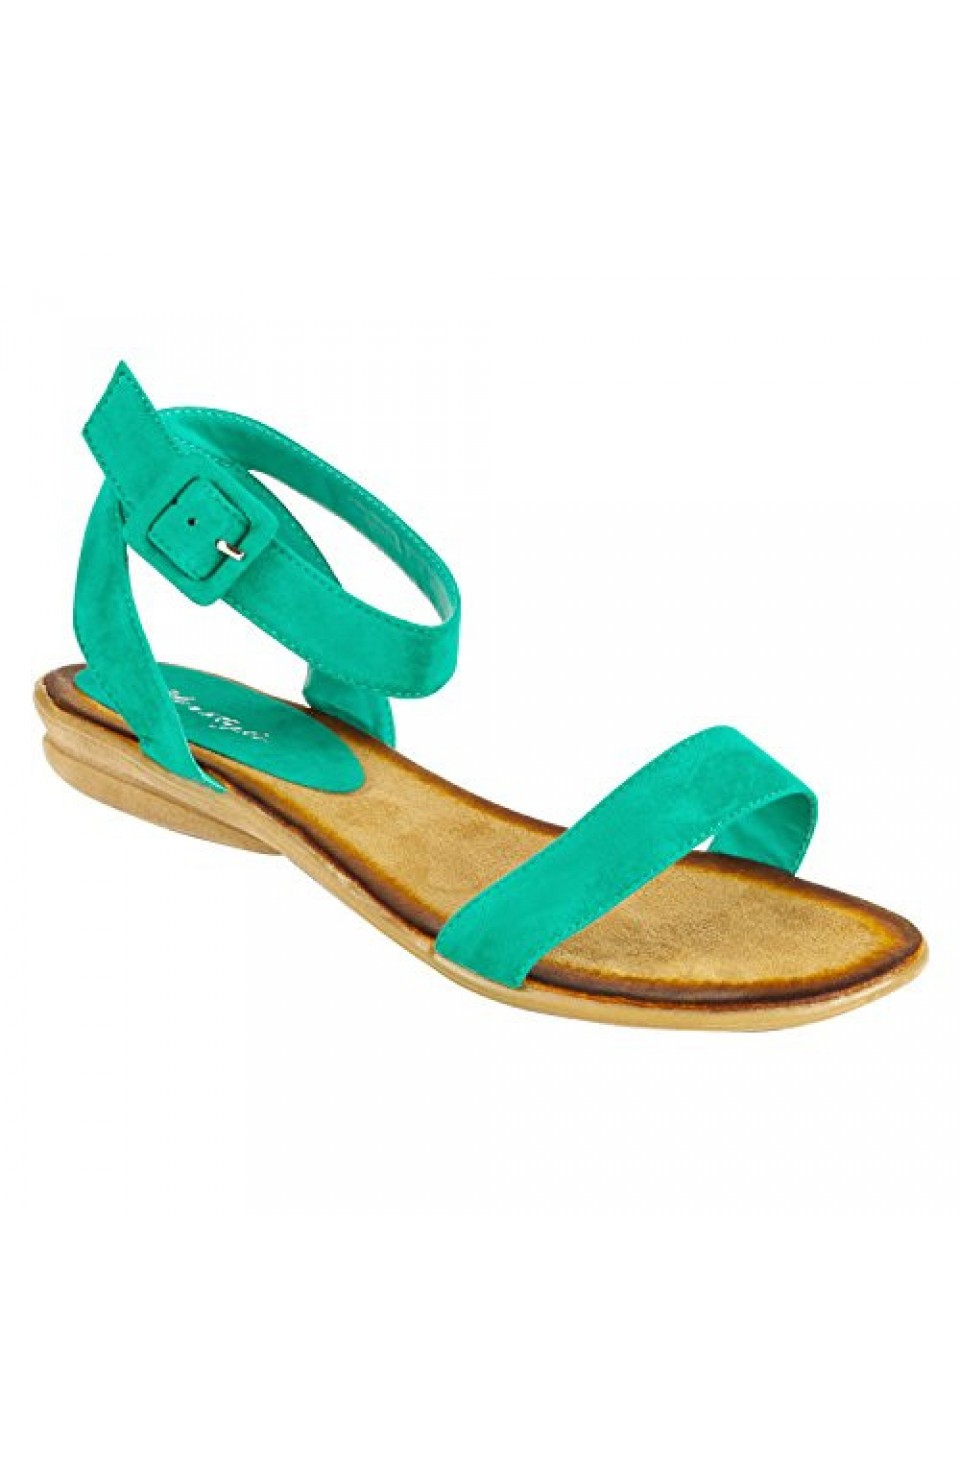 Women's Mint Campus Manmade Colorful Ankle Strap Casual Sandal